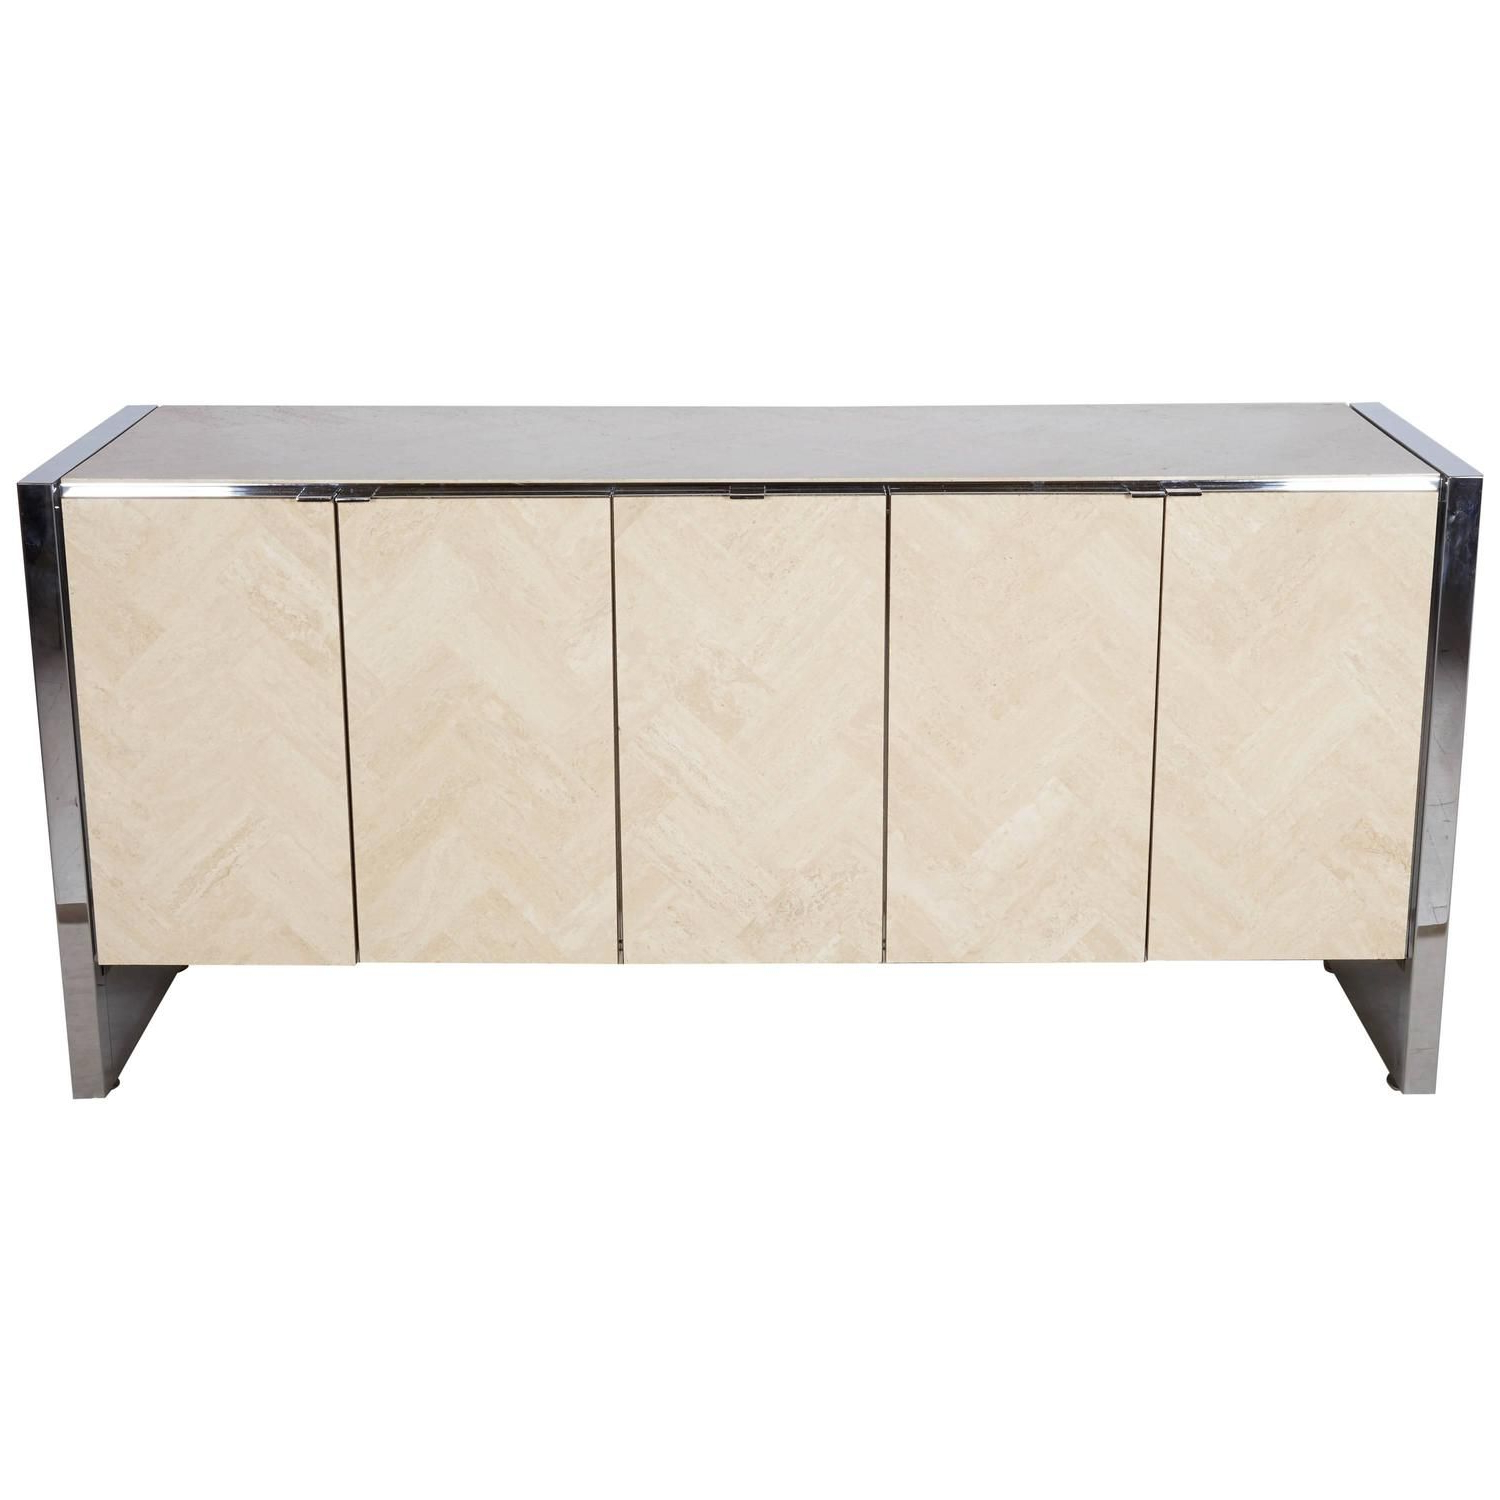 Stephen Credenzas Intended For 2020 Ello Credenza Finished In Carrara Marble In 2019 (Gallery 2 of 20)